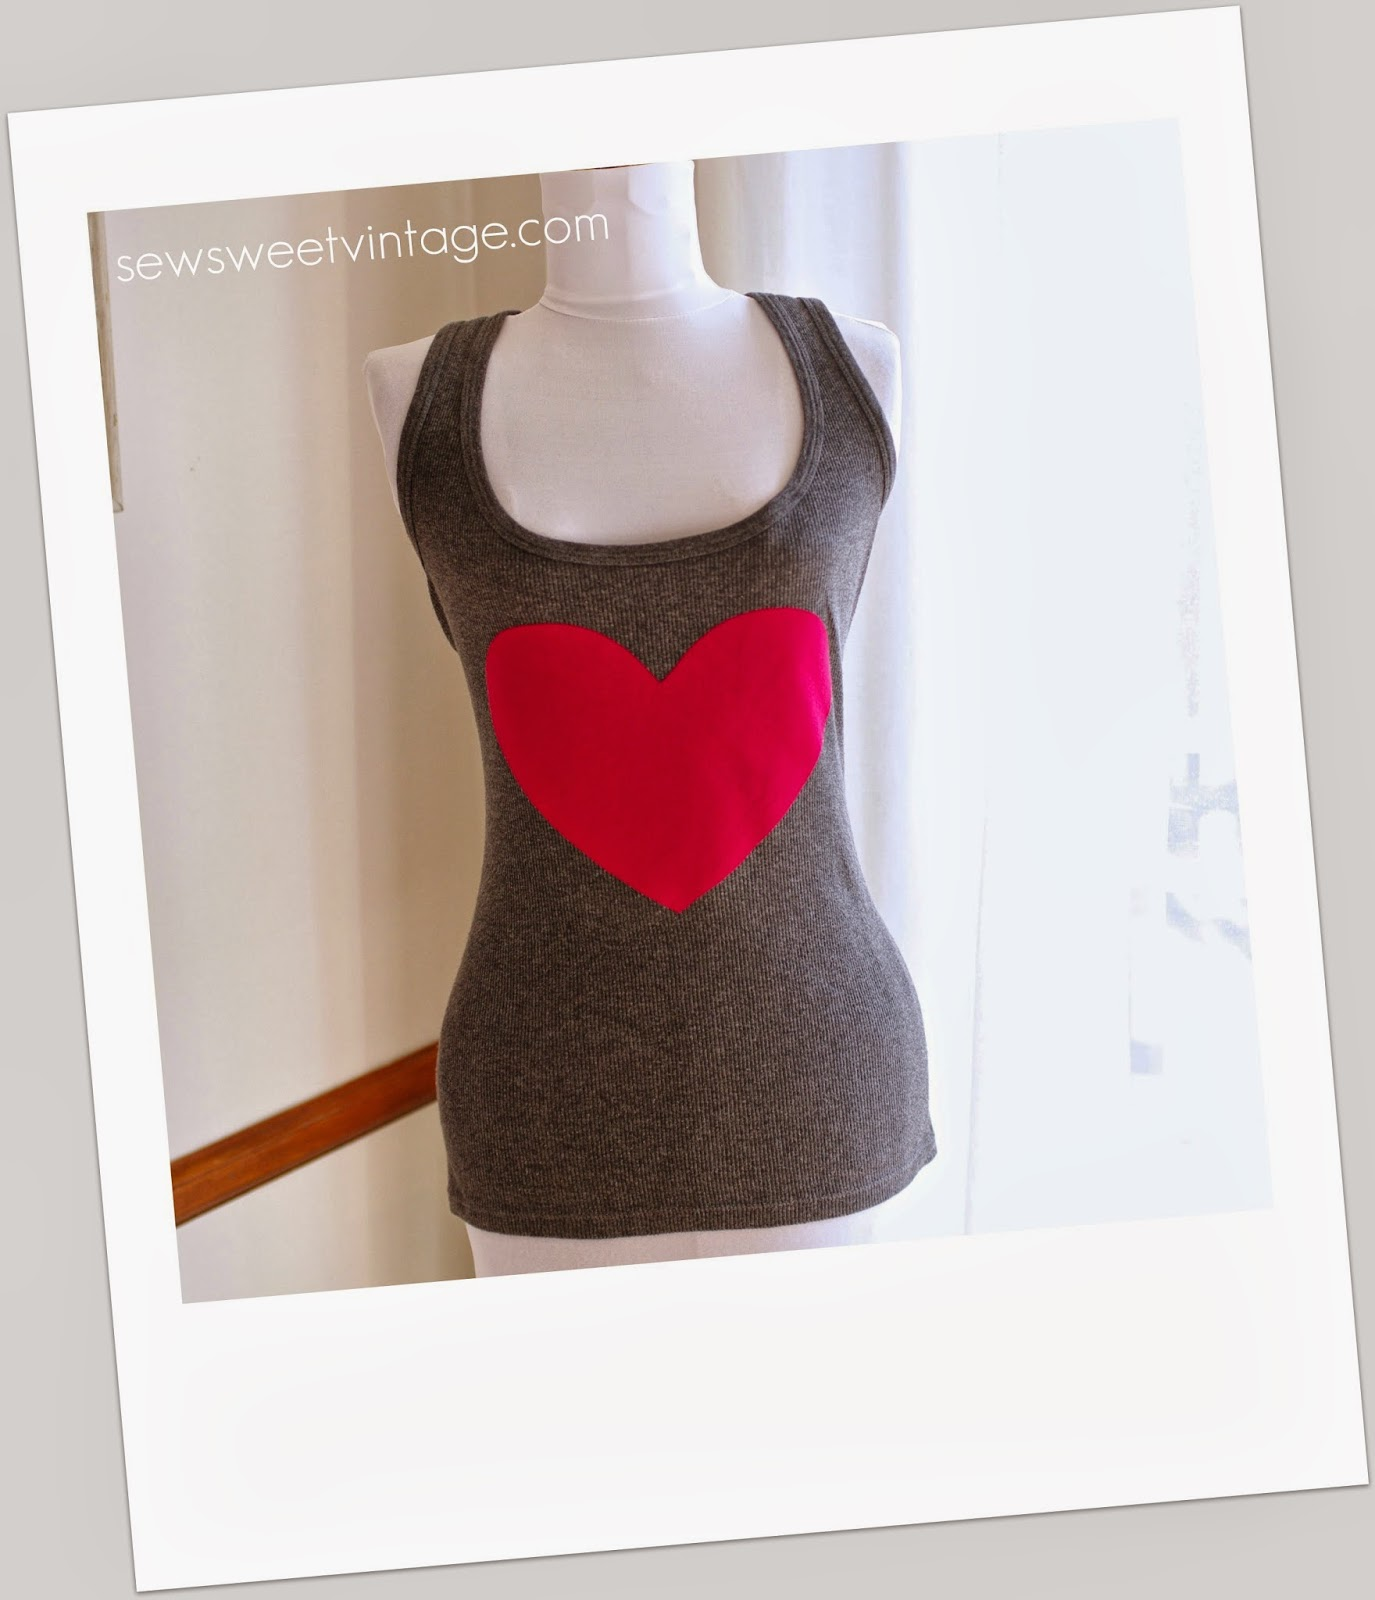 sweet heart tank top refashion for Valentine's Day by sewsweetvintage.com